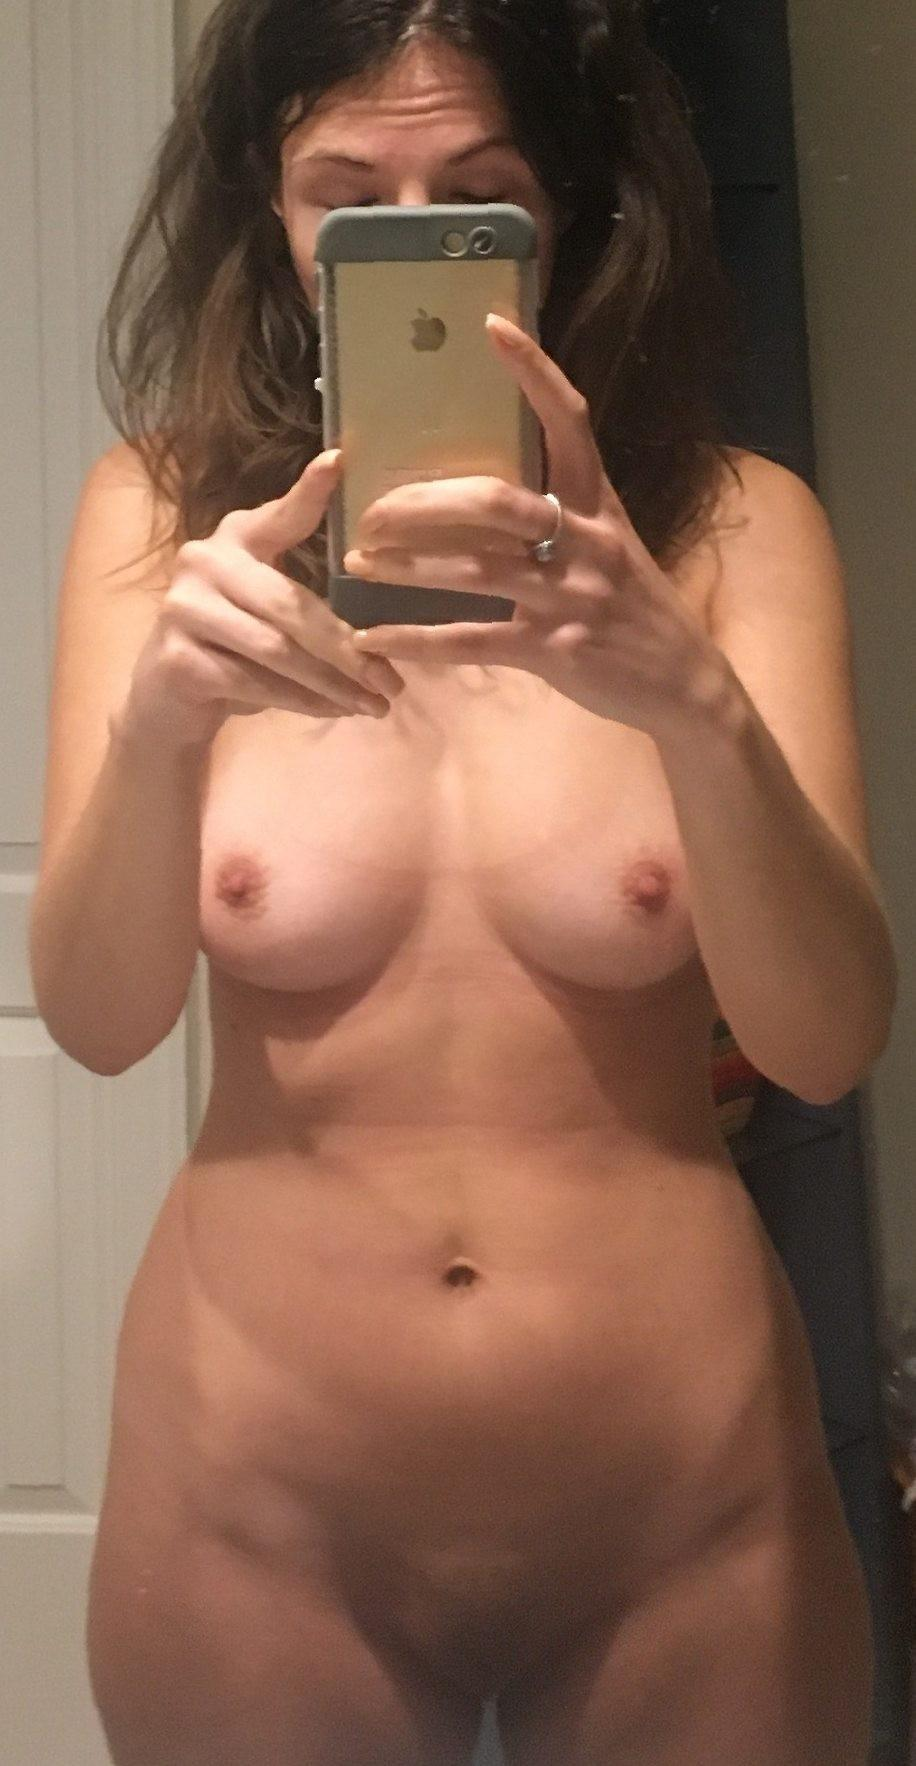 Nude selfie with a small tits belonging to a amateur MILF. Sweet wife takes selfie while exposing her small boobs and snatch